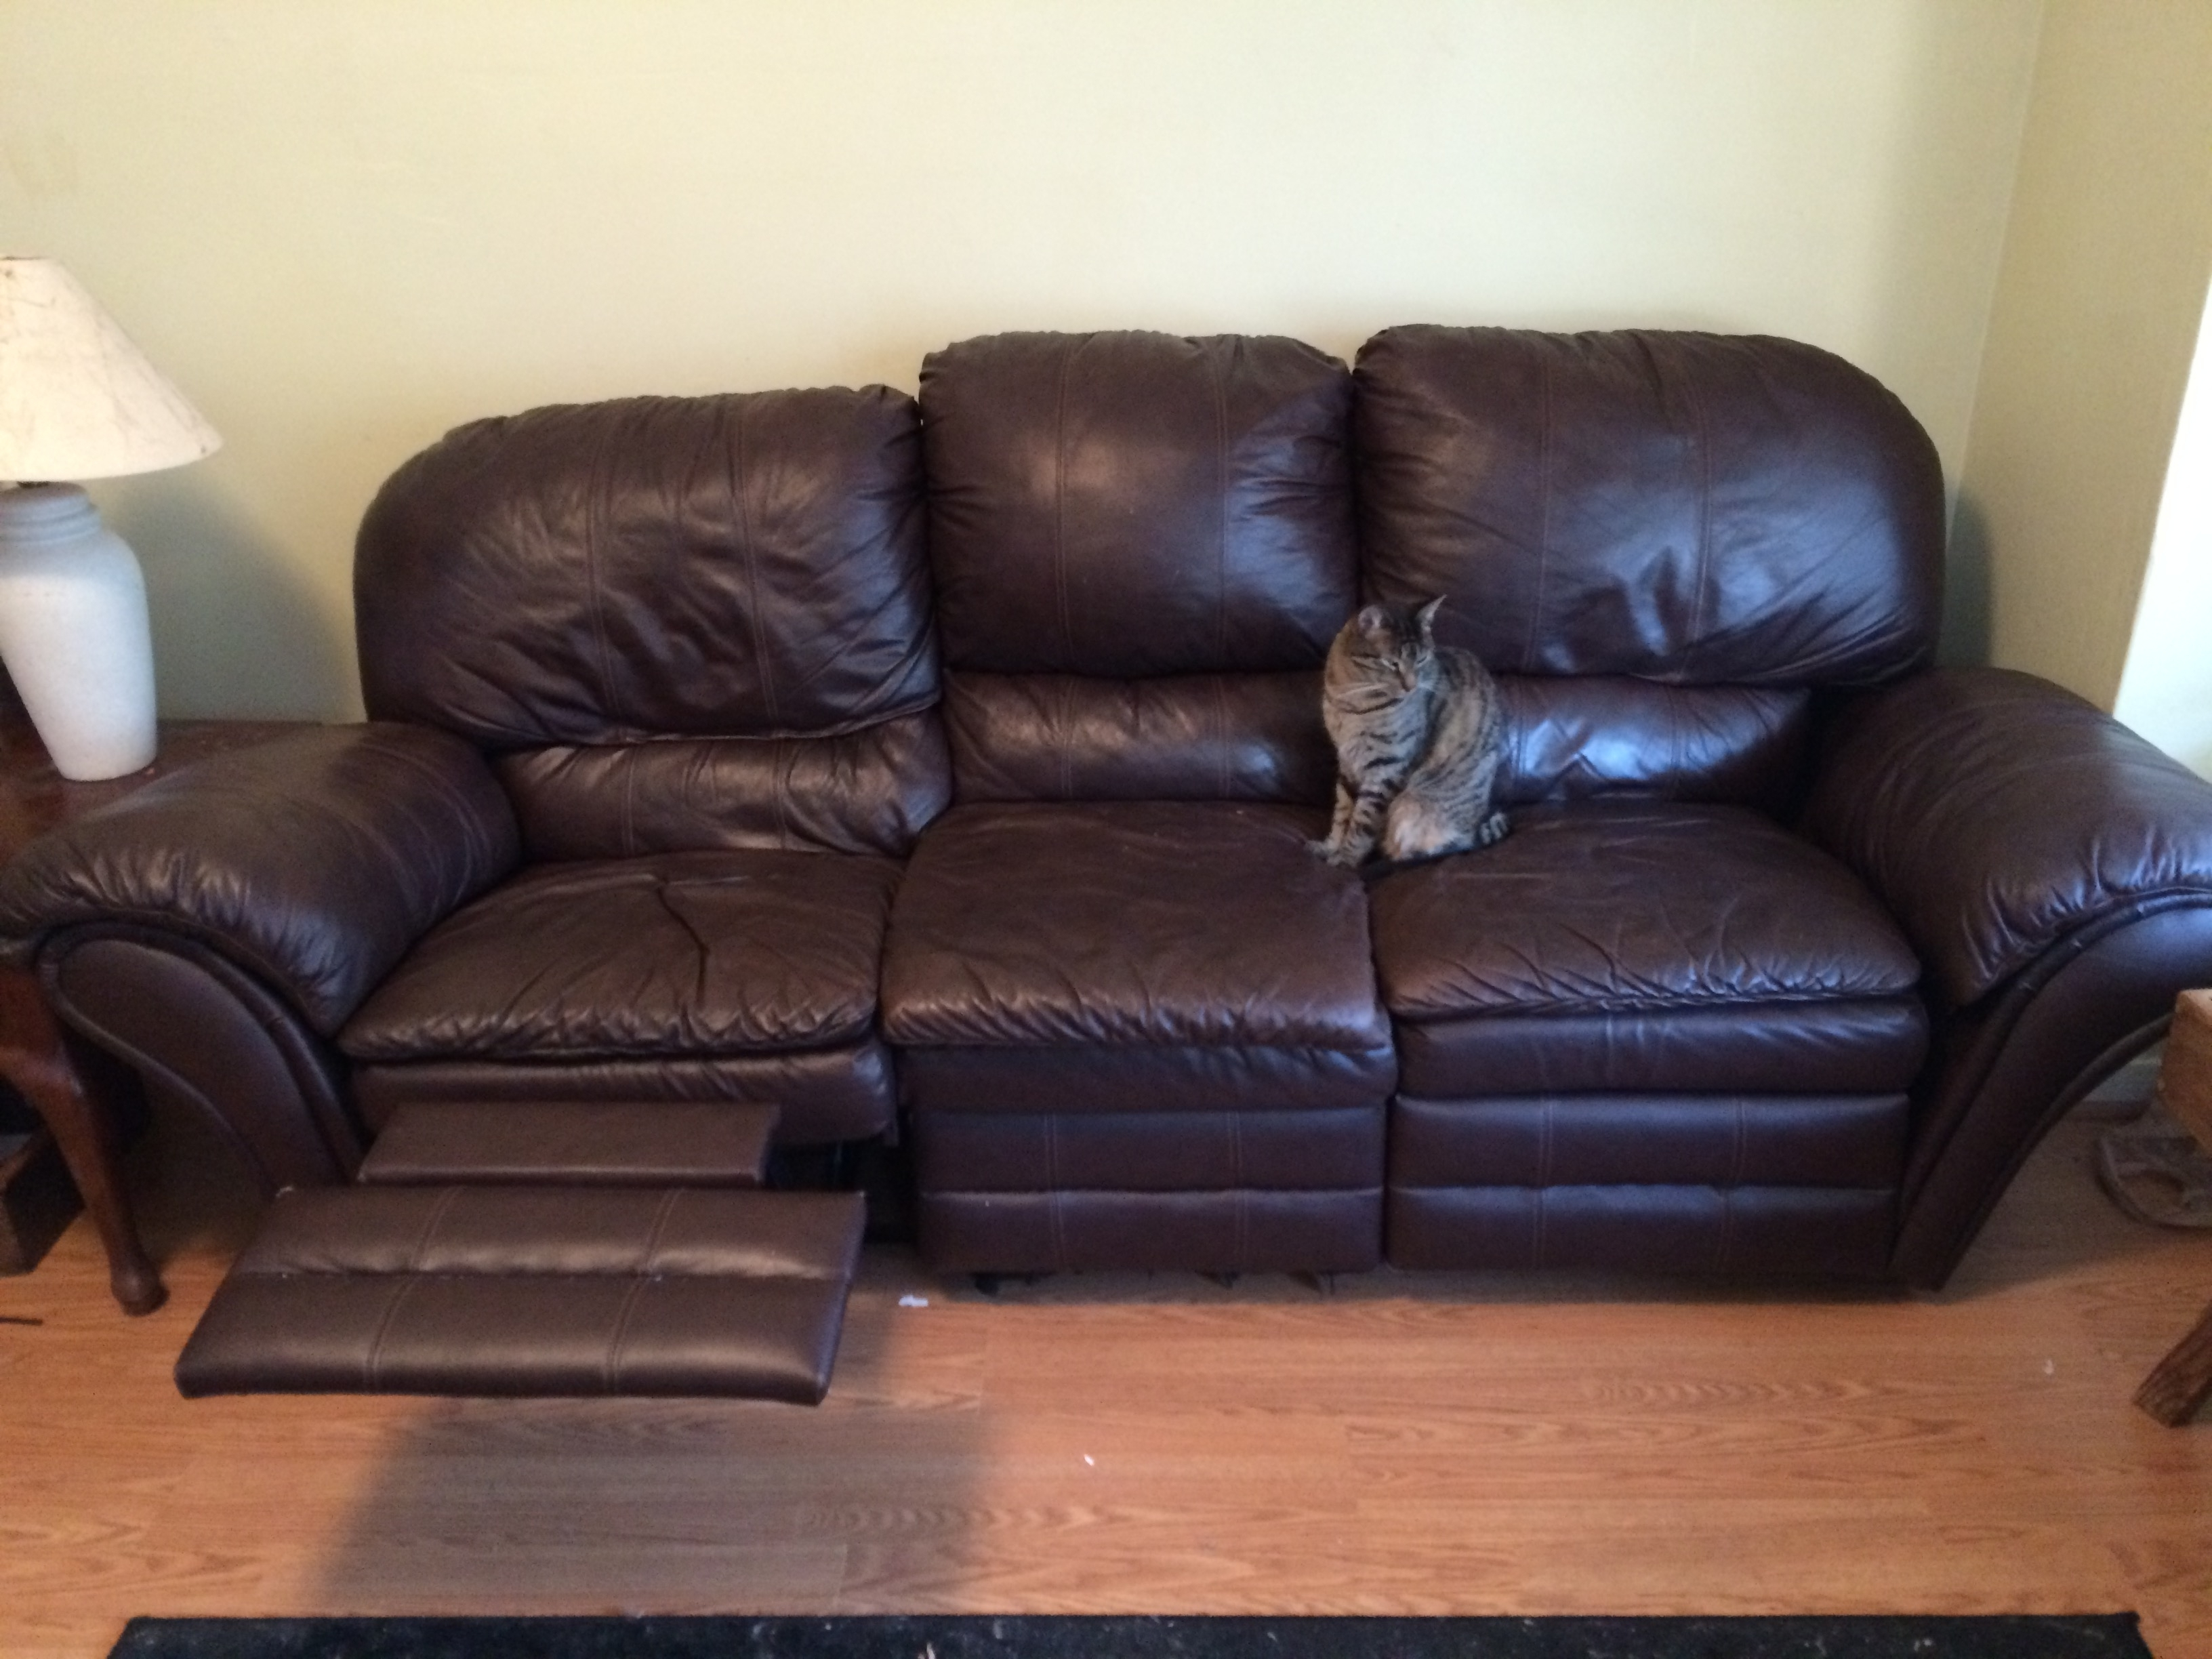 Stylish Sectional Sofas On Craigslist – Mediasupload With Preferred Sectional Sofas At Craigslist (View 2 of 15)